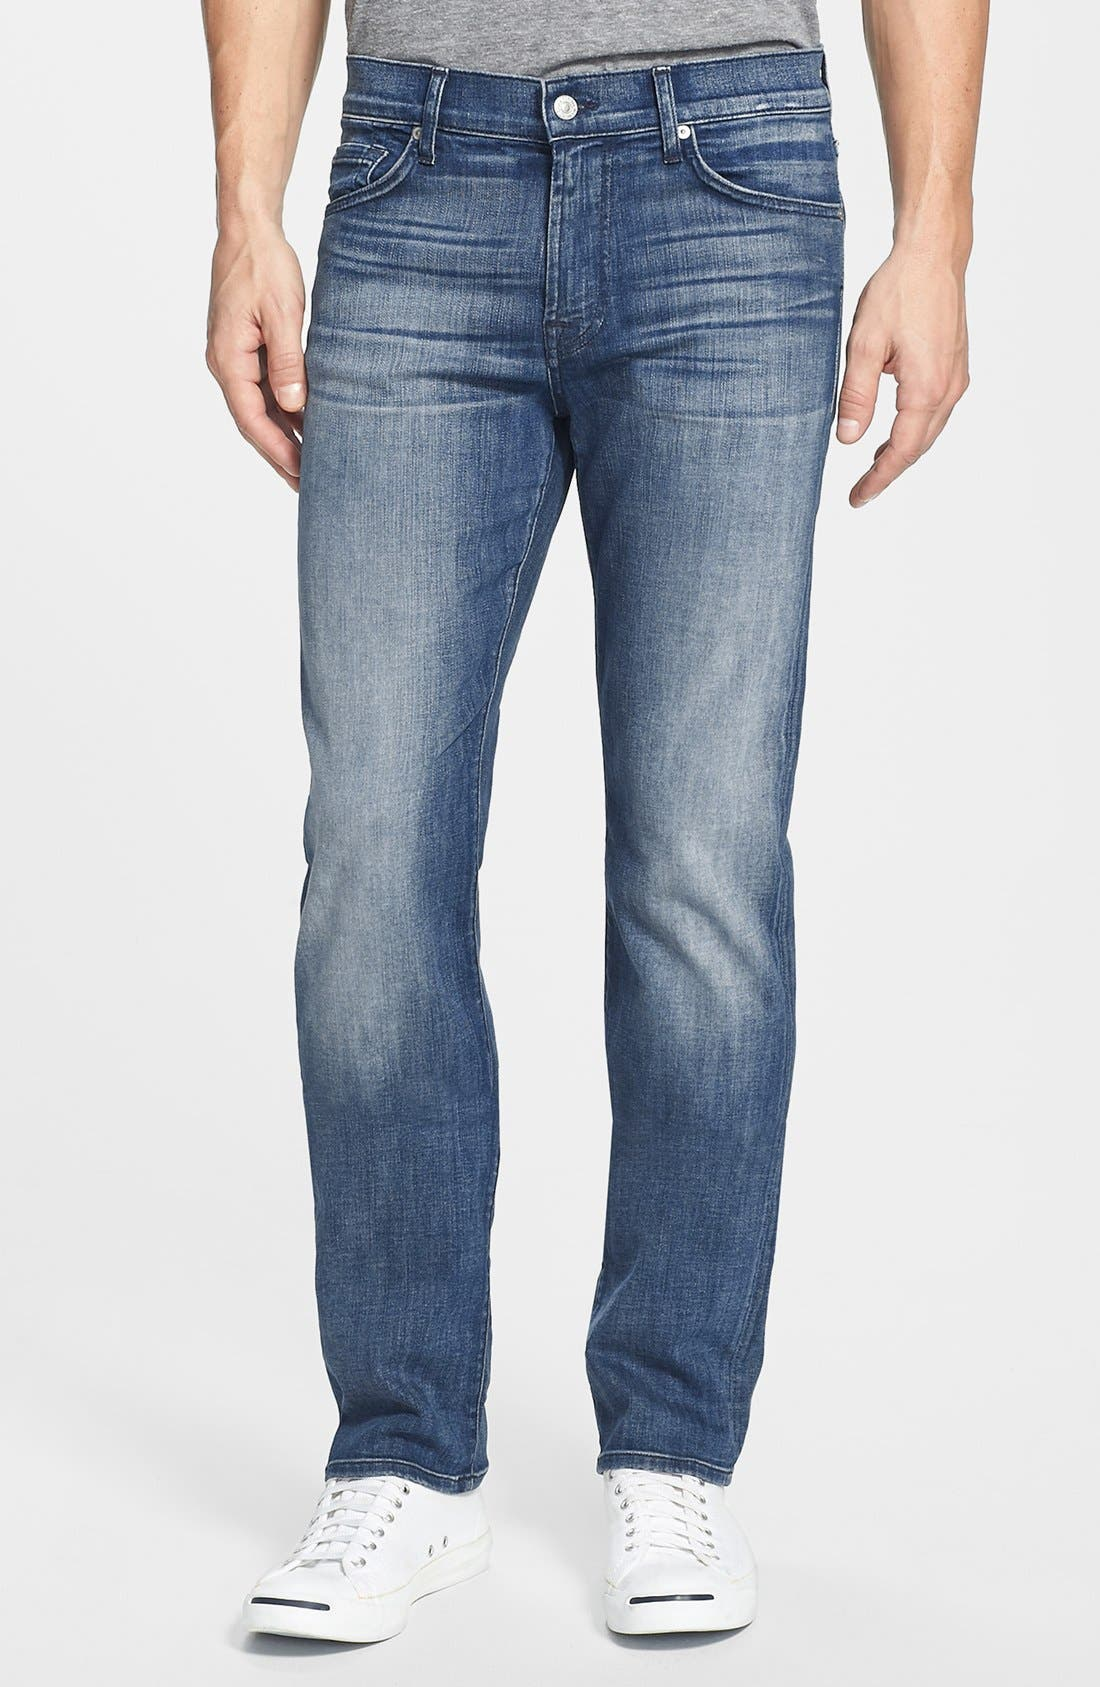 Alternate Image 1 Selected - 7 For All Mankind® 'Slimmy - Luxe Performance' Slim Fit Jeans (Nakitta Blue)